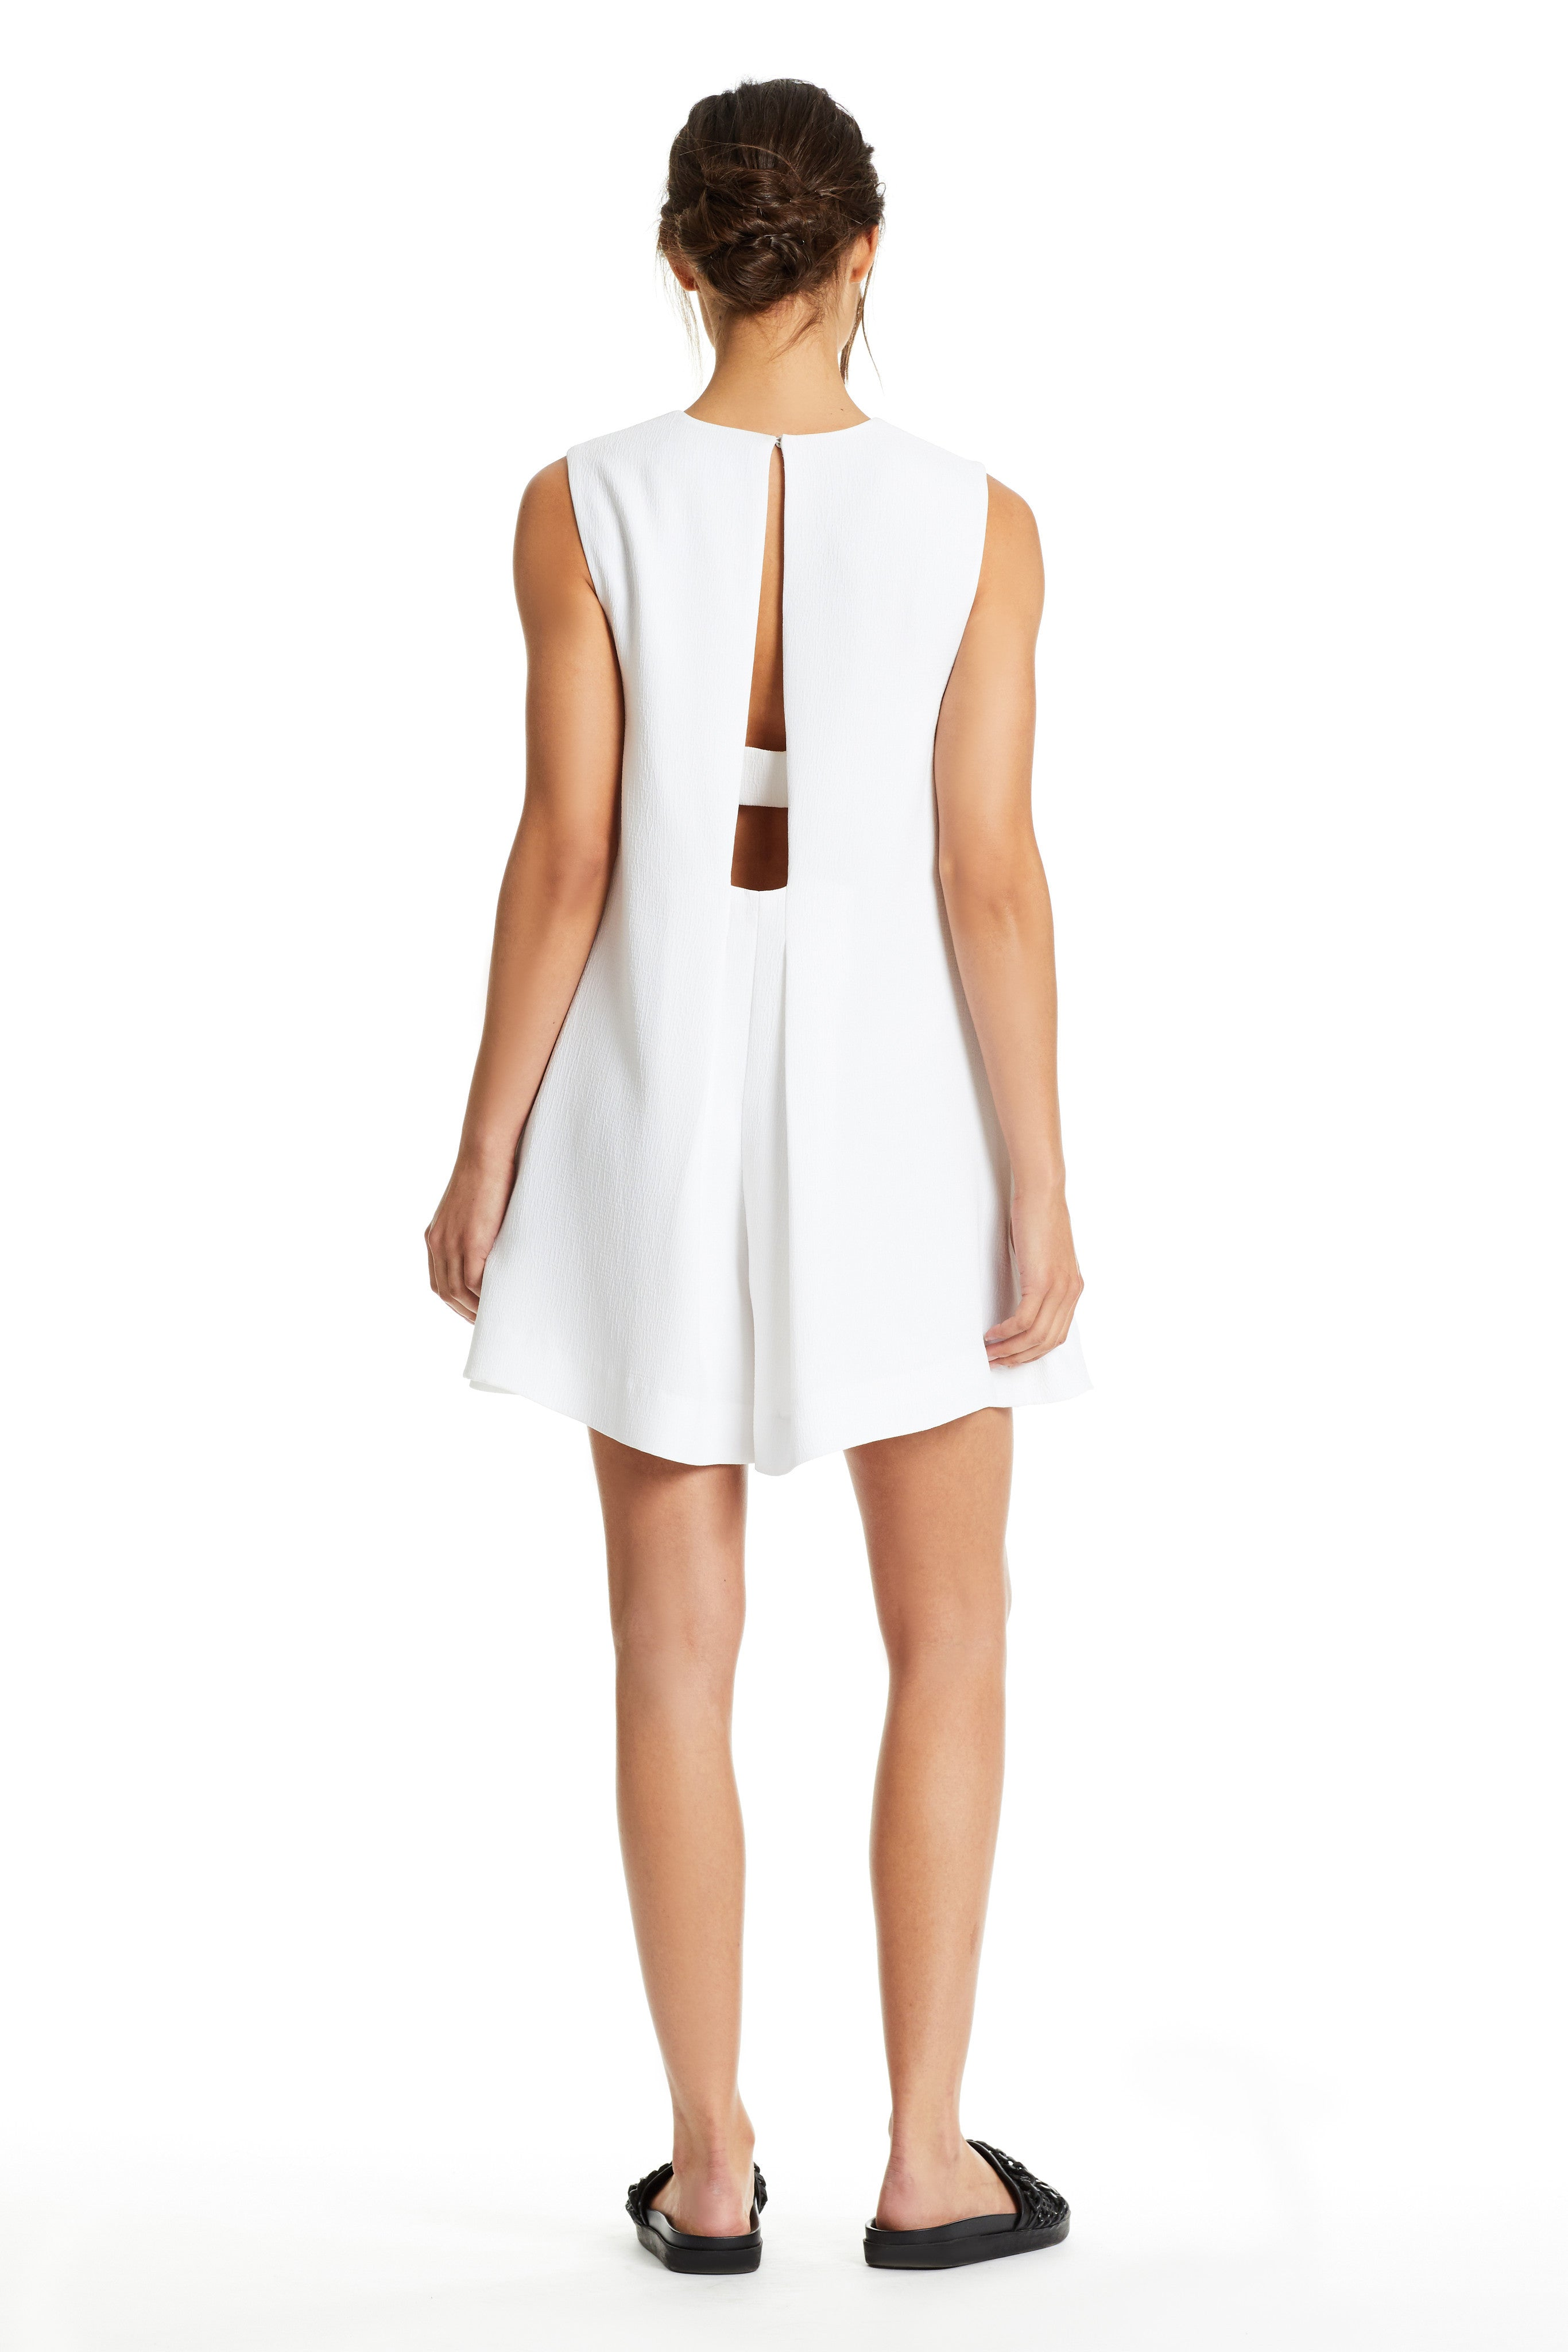 OPEN BACK CREPE ROMPER ROMPERS by KENDALL + KYLIE